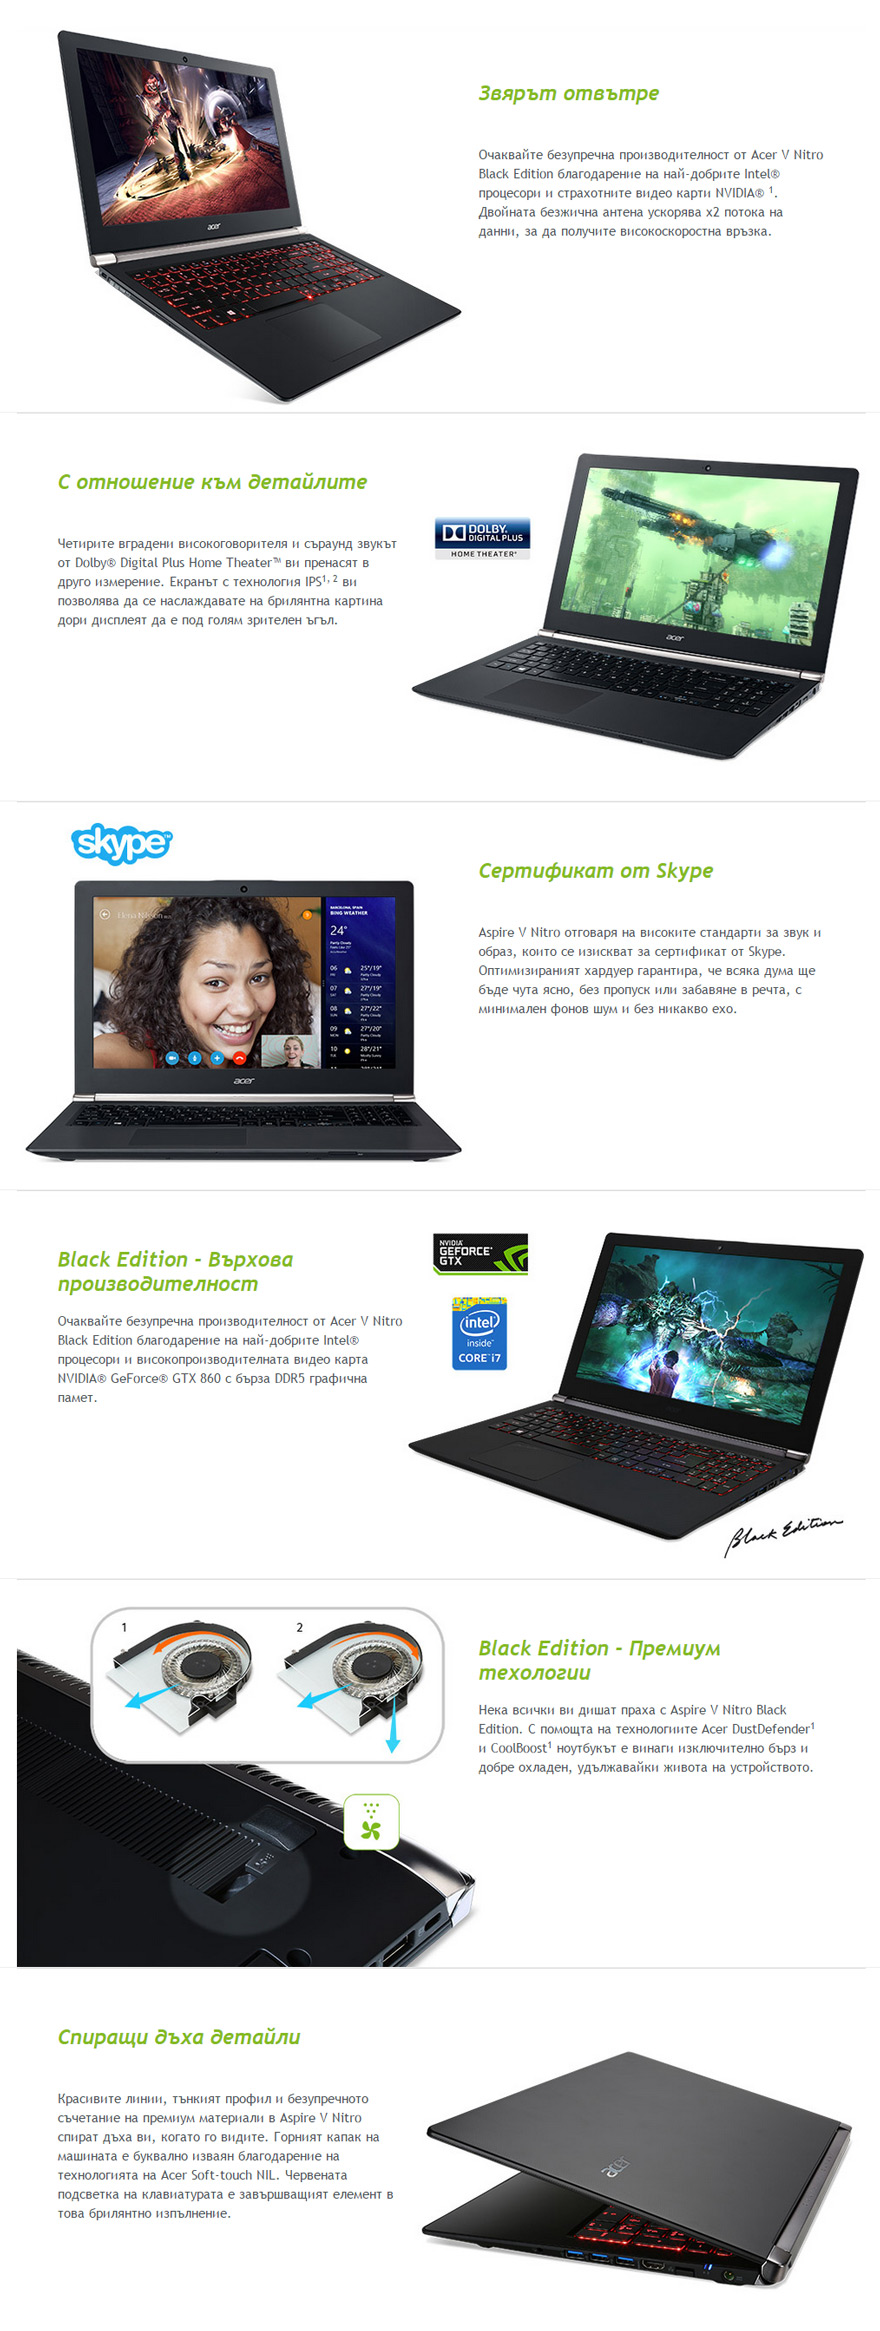 acer-aspire-v-nitro-laptop